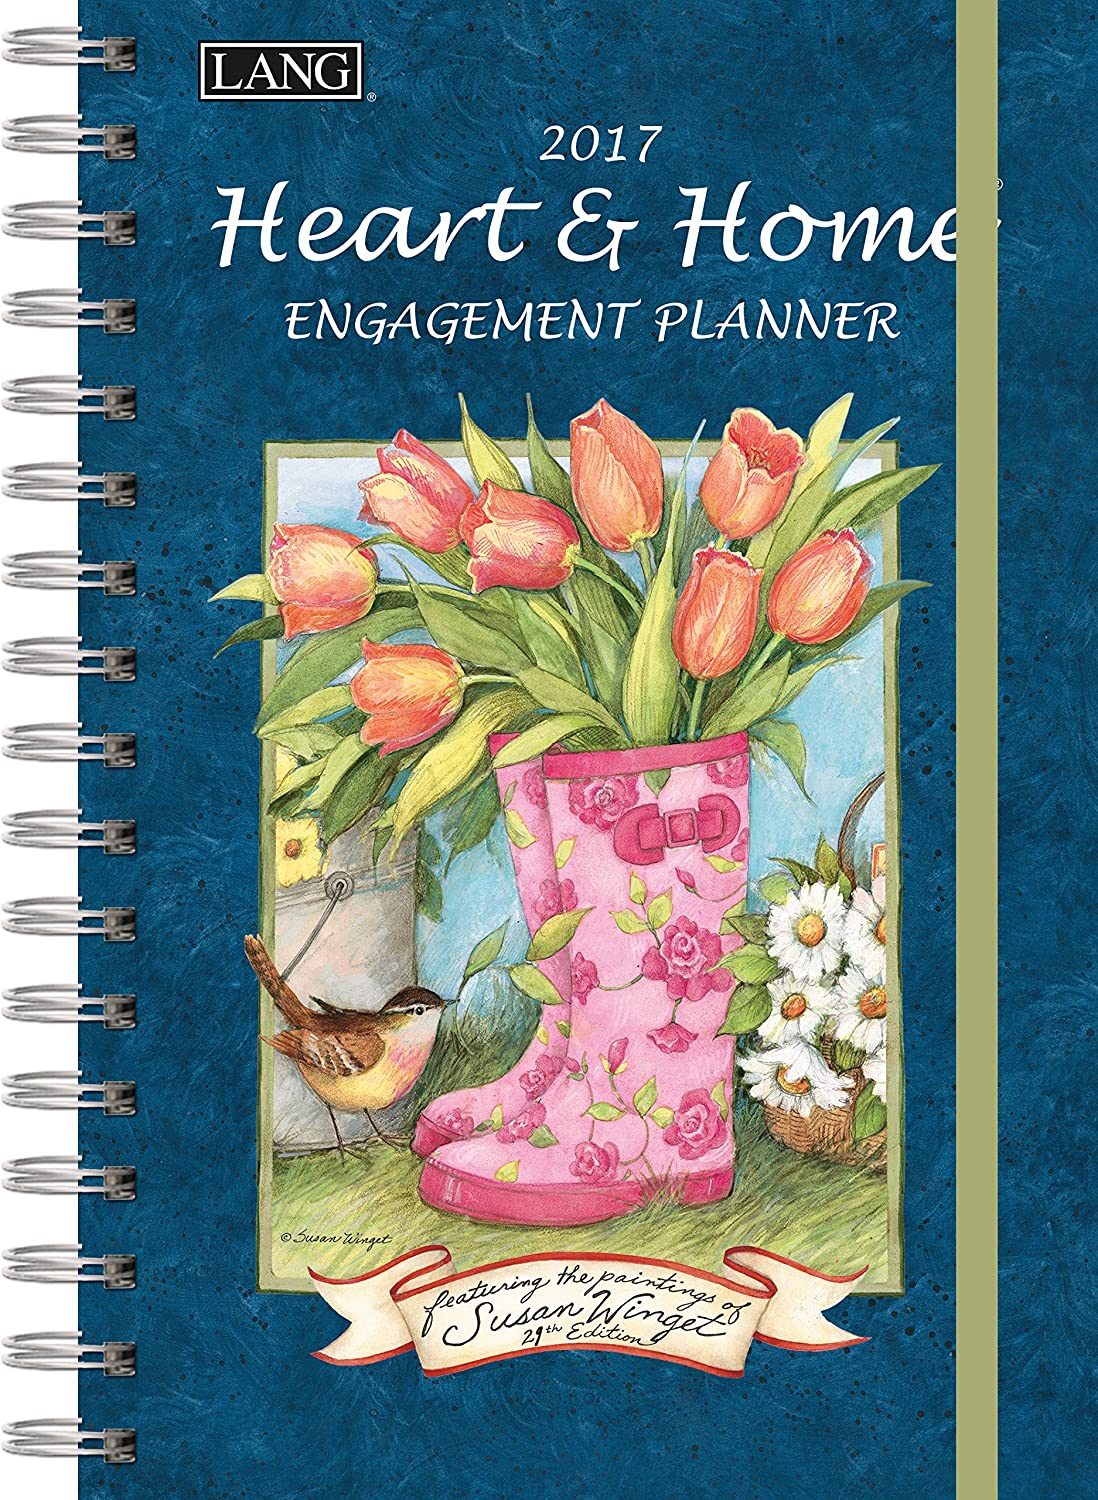 Lang 2017 Heart & Home Spiral Engagement Planner, 6 x 9 inches (17991011085)